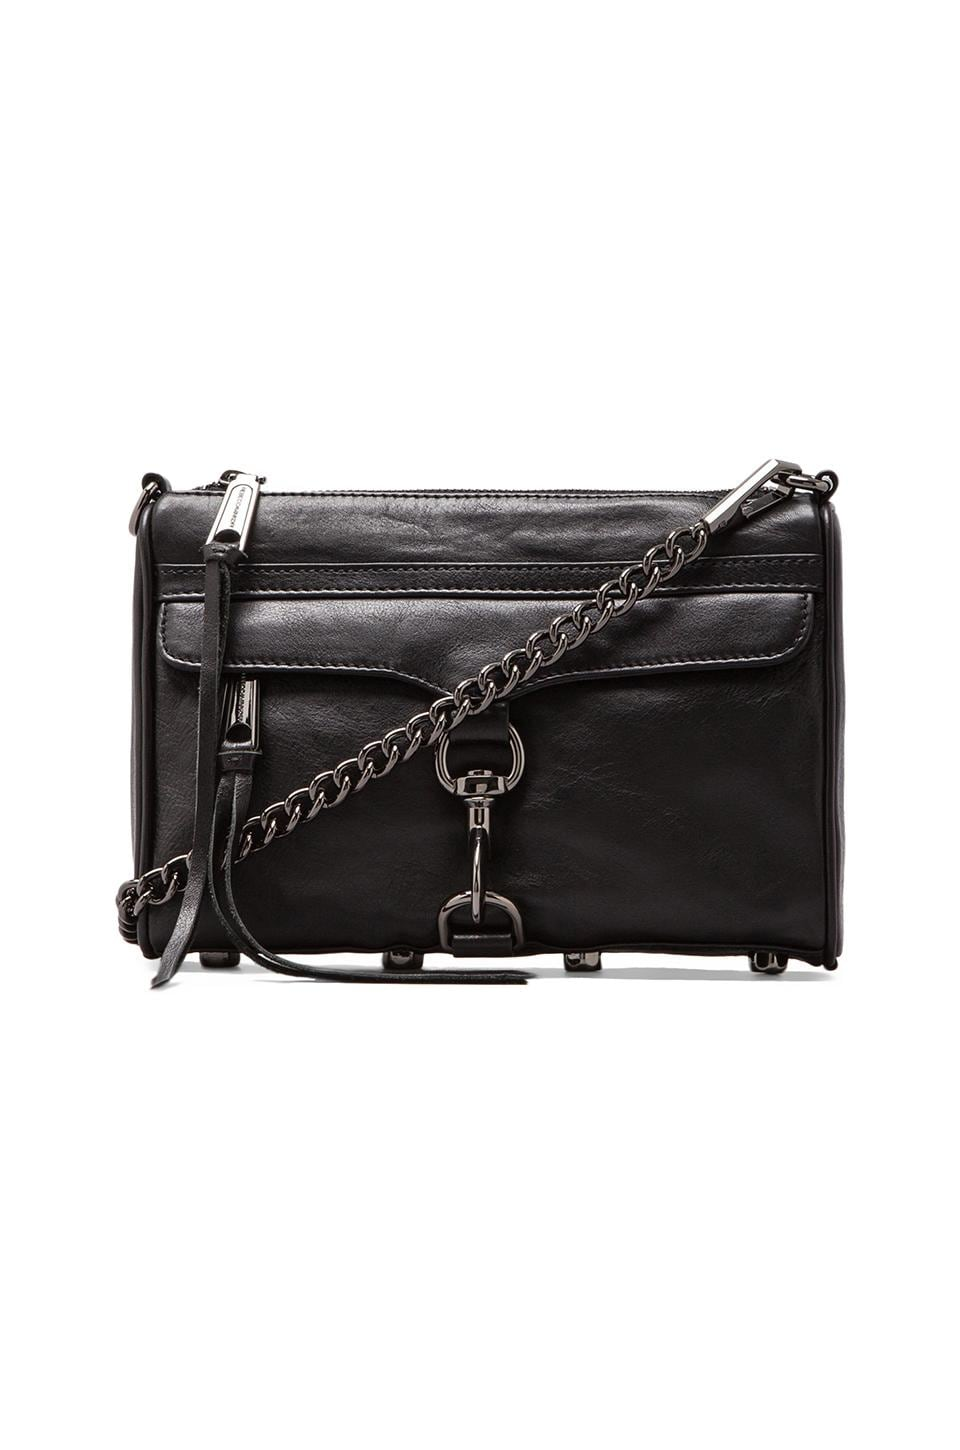 Rebecca Minkoff Mini Mac in Black/Gunmetal